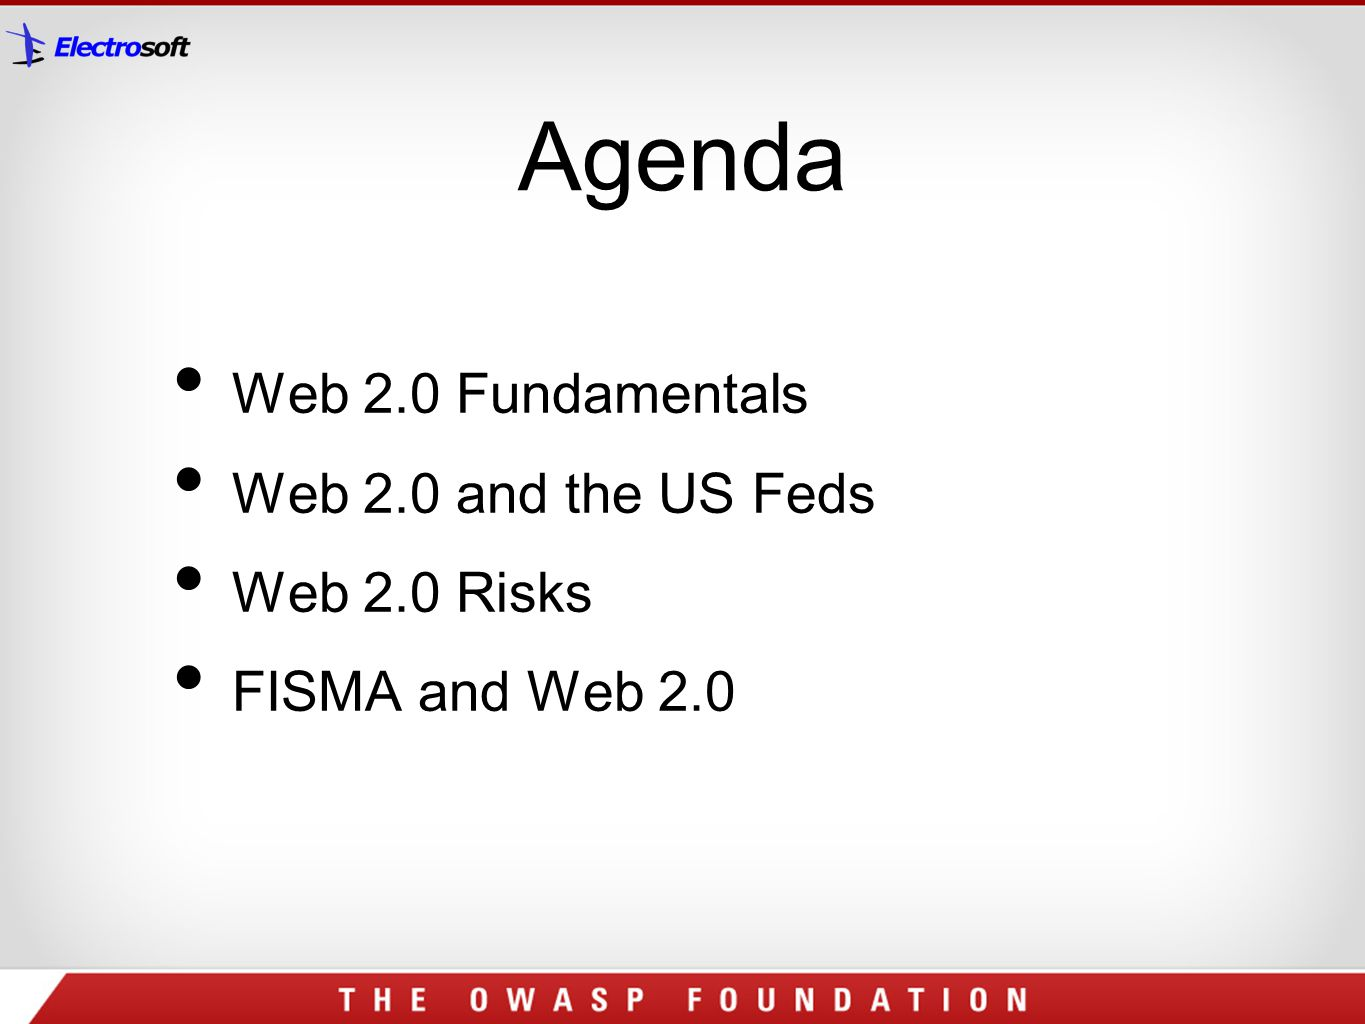 Agenda Web 2.0 Fundamentals Web 2.0 and the US Feds Web 2.0 Risks